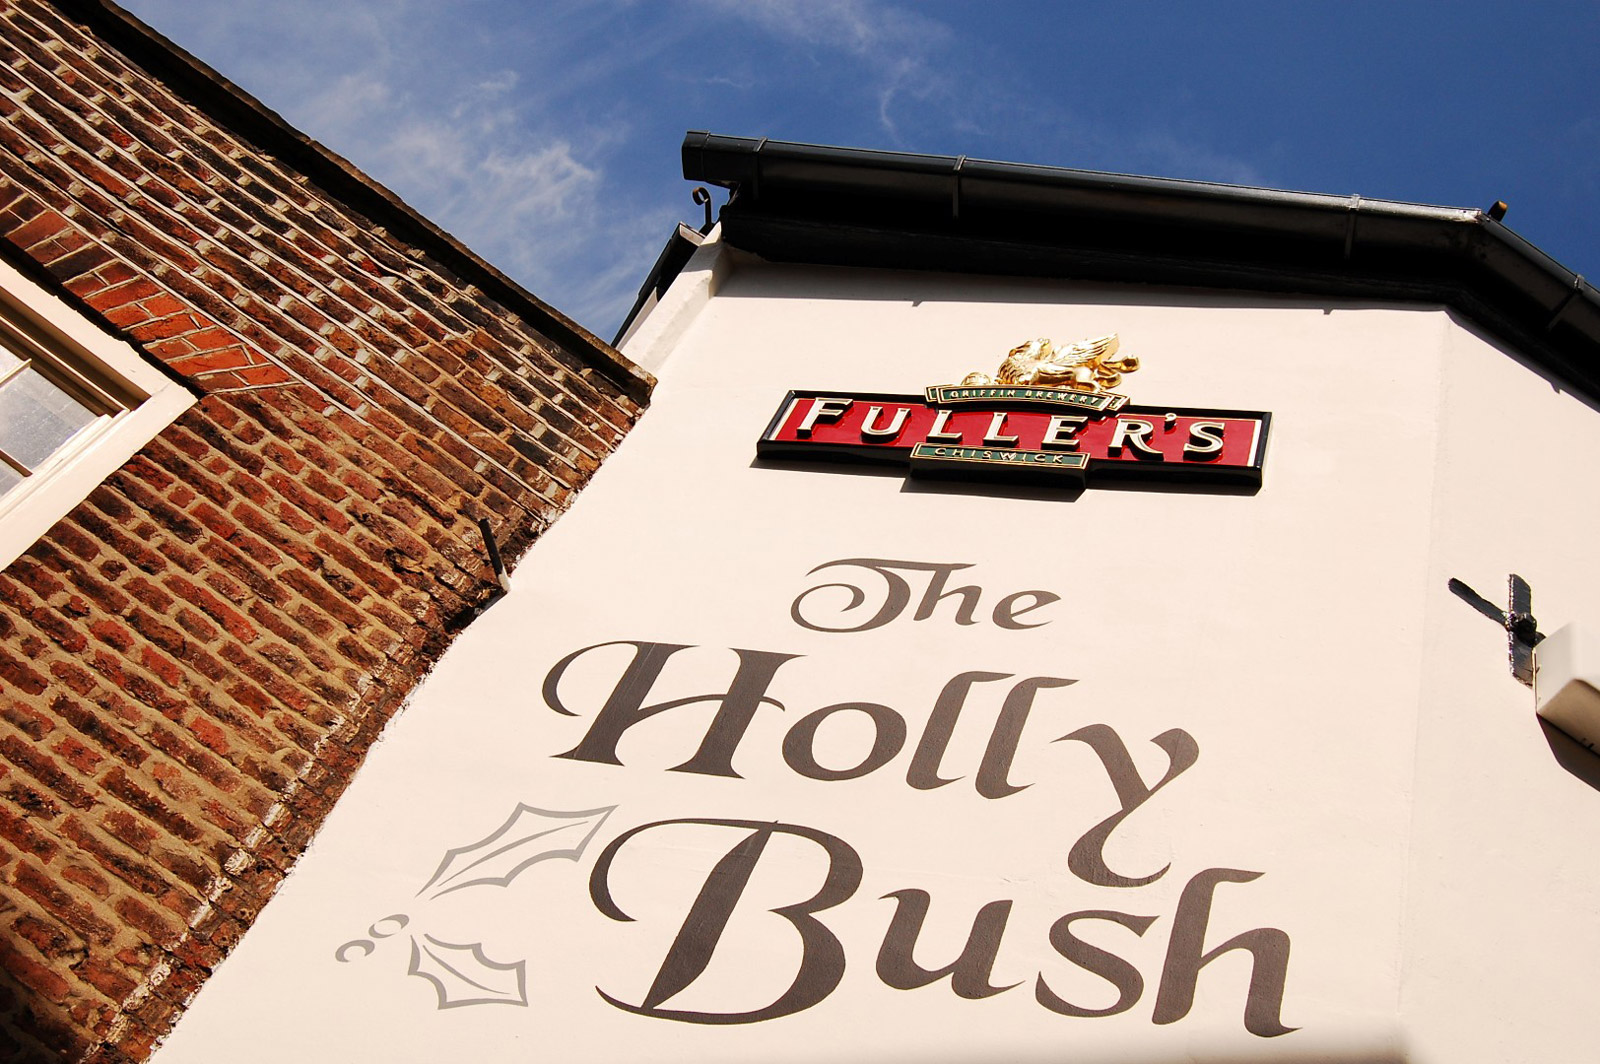 Holly Bush - Hampstead - London